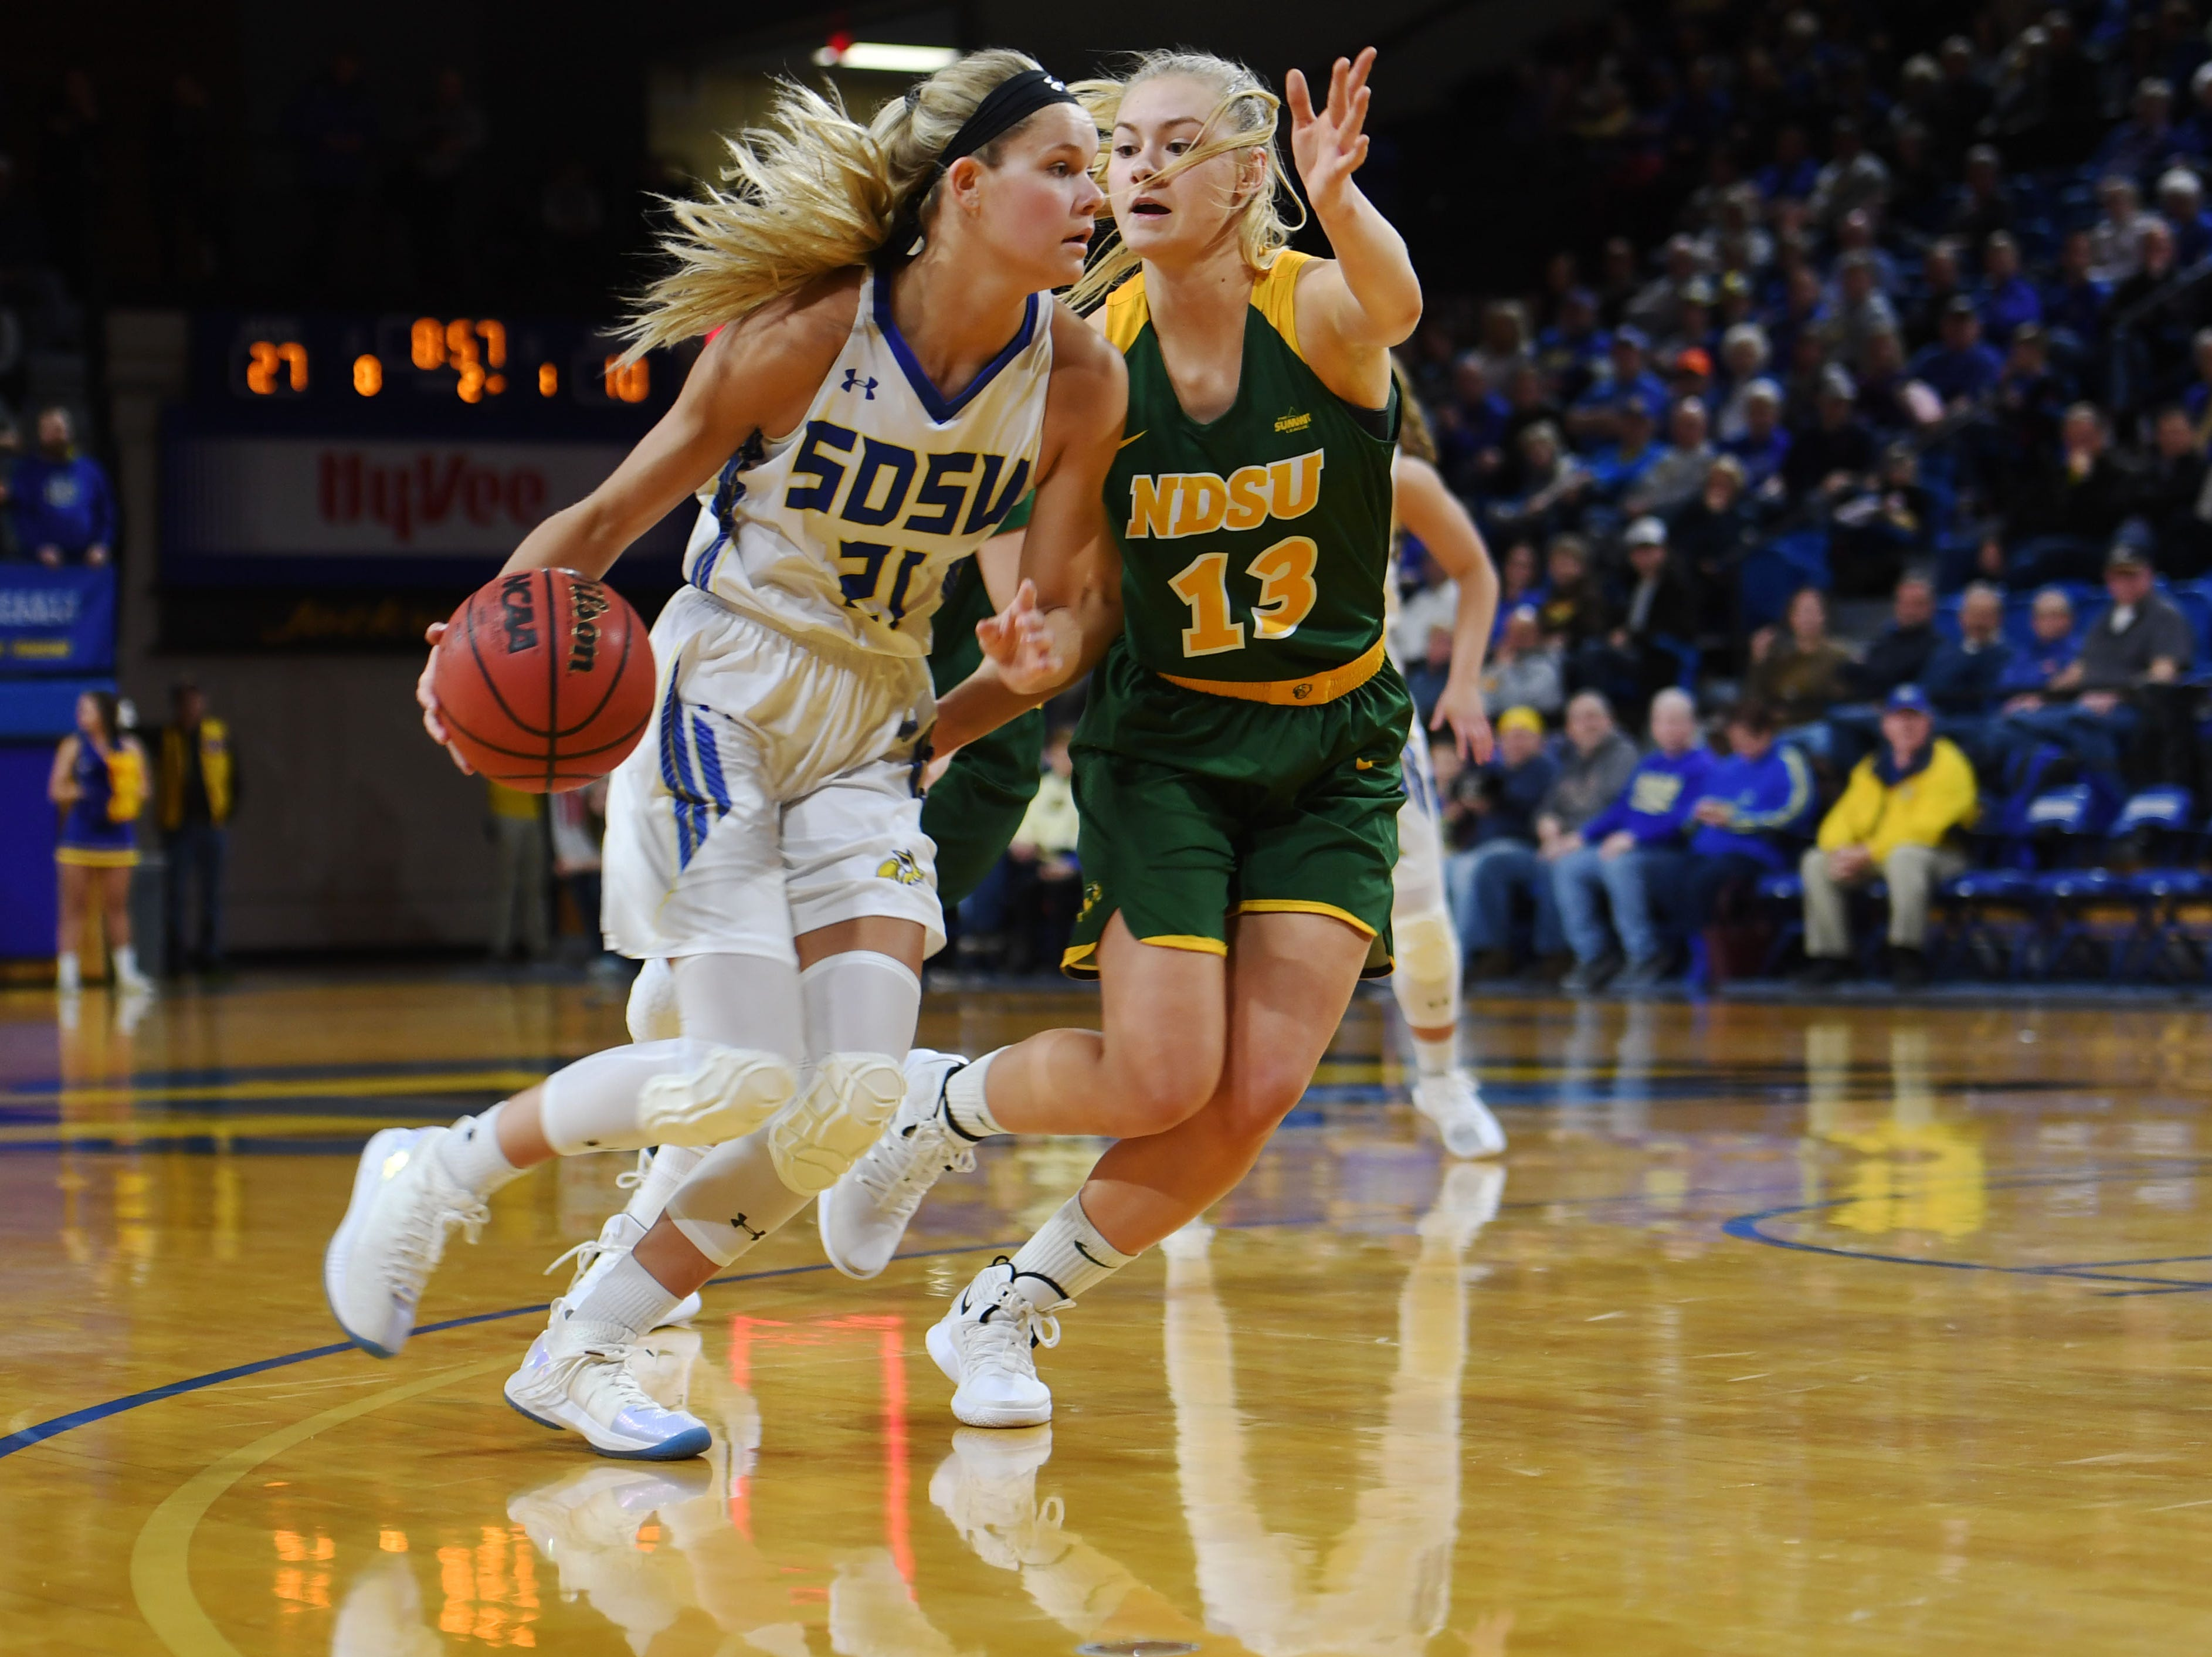 SDSU's Tylee Irwin goes against NDSU's Cirkeline Rimdal during the game Wednesday, Jan. 23, at Frost Arena in Brookings.